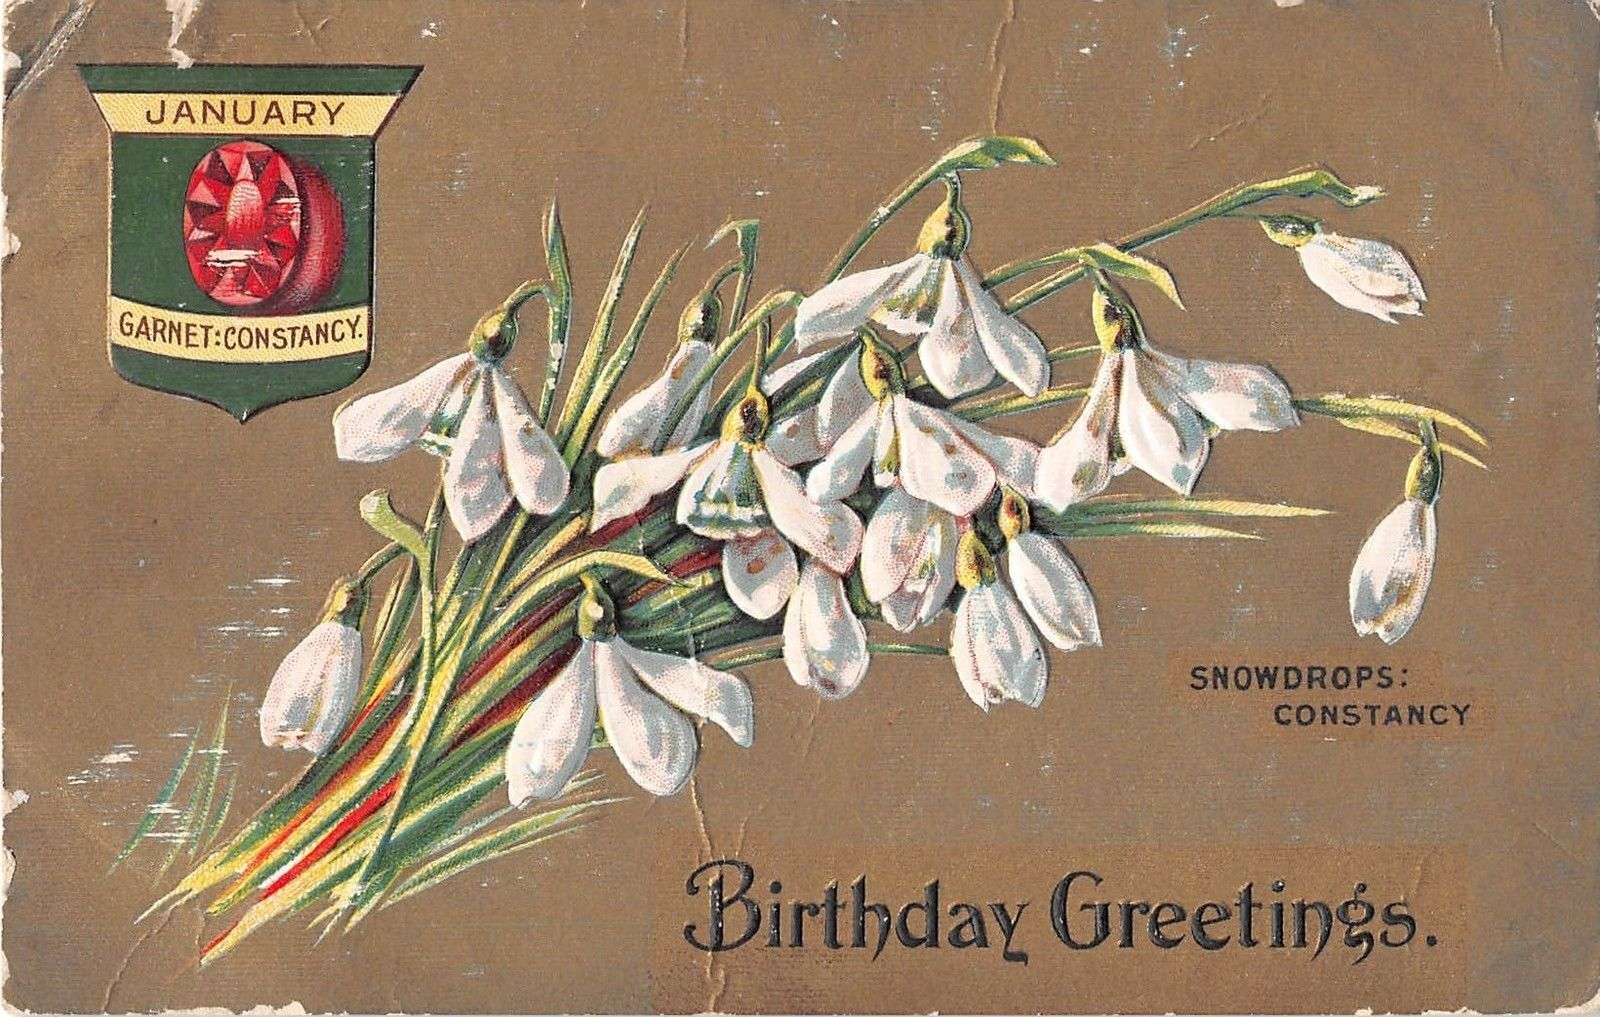 Old Gem Flower Birthday Postcard For January With Garnet